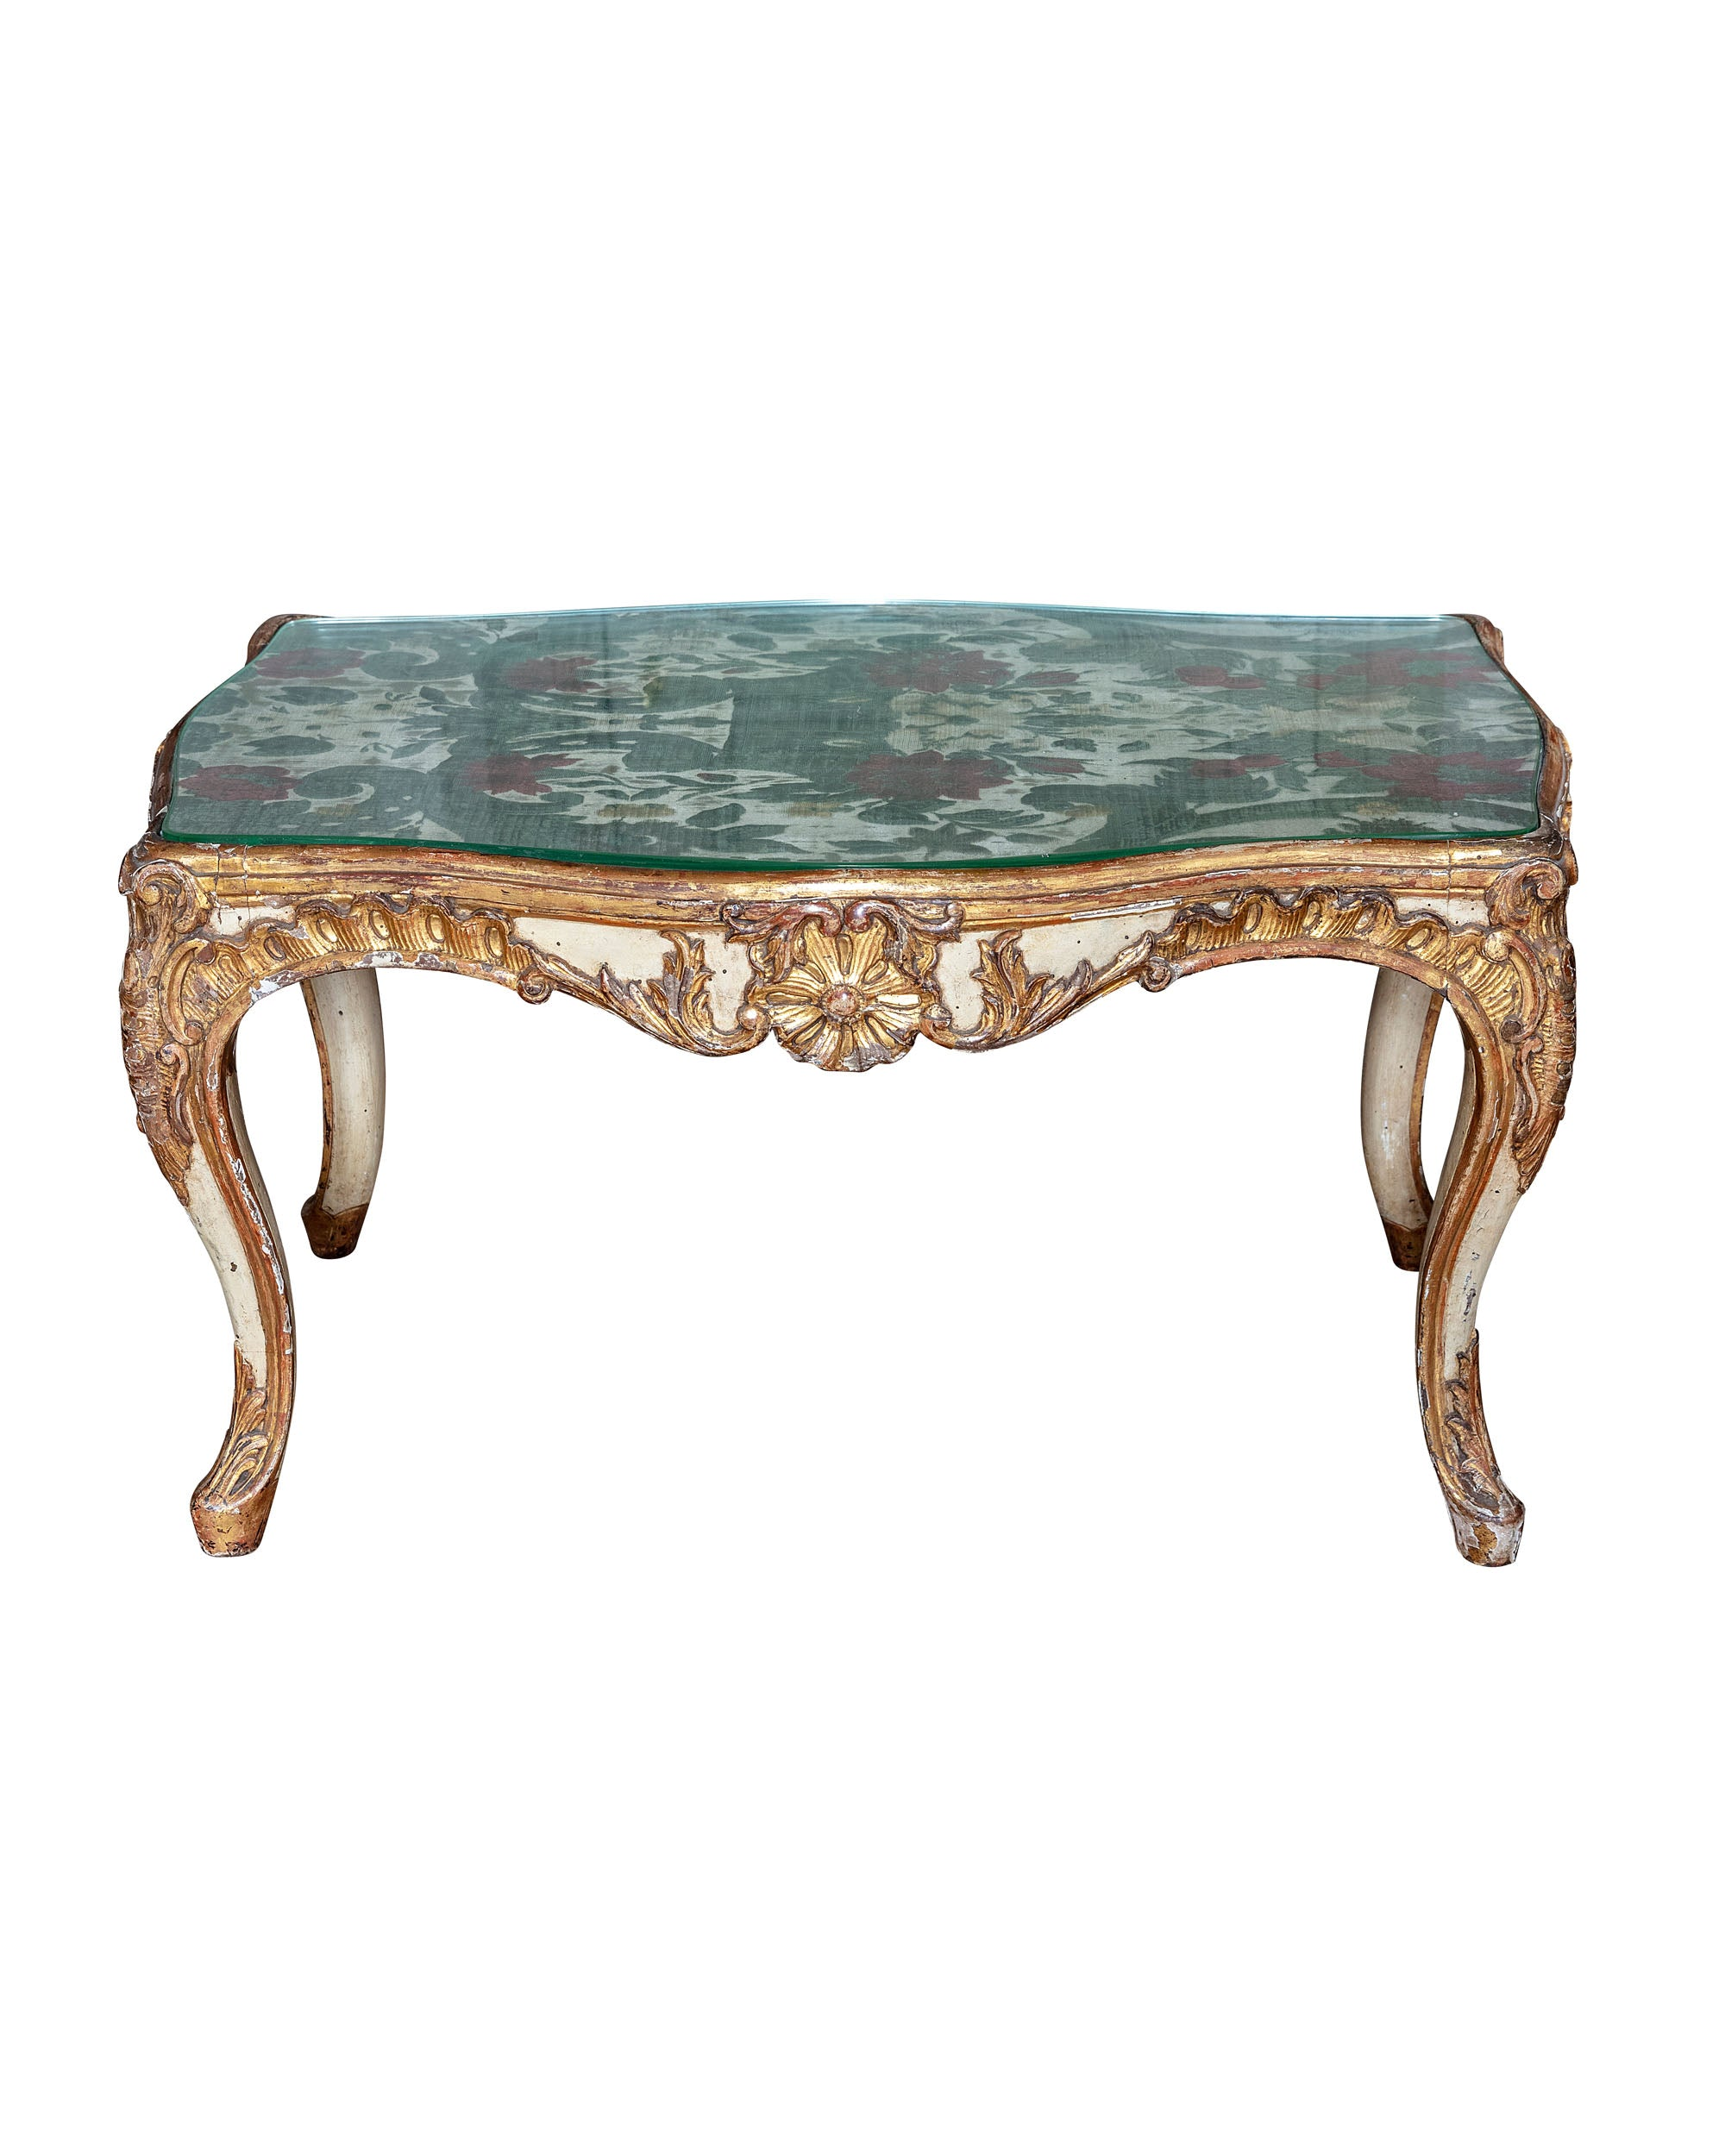 Carved wooden side table with velvet and silk damask fabric top. XVIIIth century